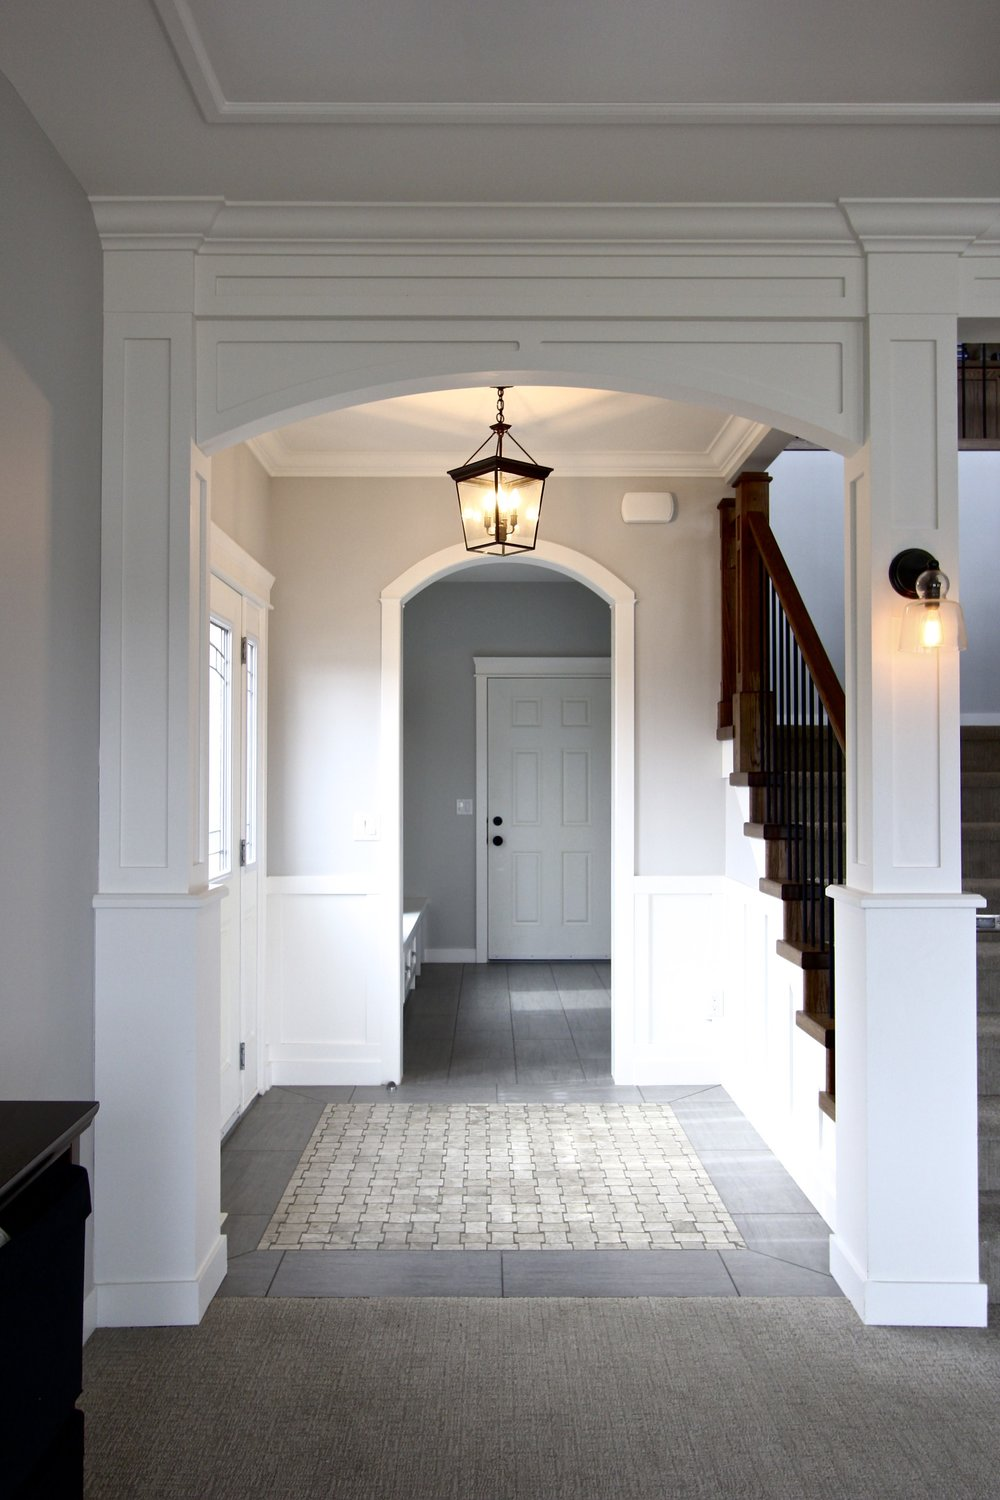 Metric Design Centre, Interior Design, Saskatoon, Residential Design, New Home Build, Transitional Design, Front Entrance, Mudroom, White Molding and Trim, Door, Marble Tile Inset, Pendant Lighting, White Trim and Molding, Carpet, Column, Staircase.jpg